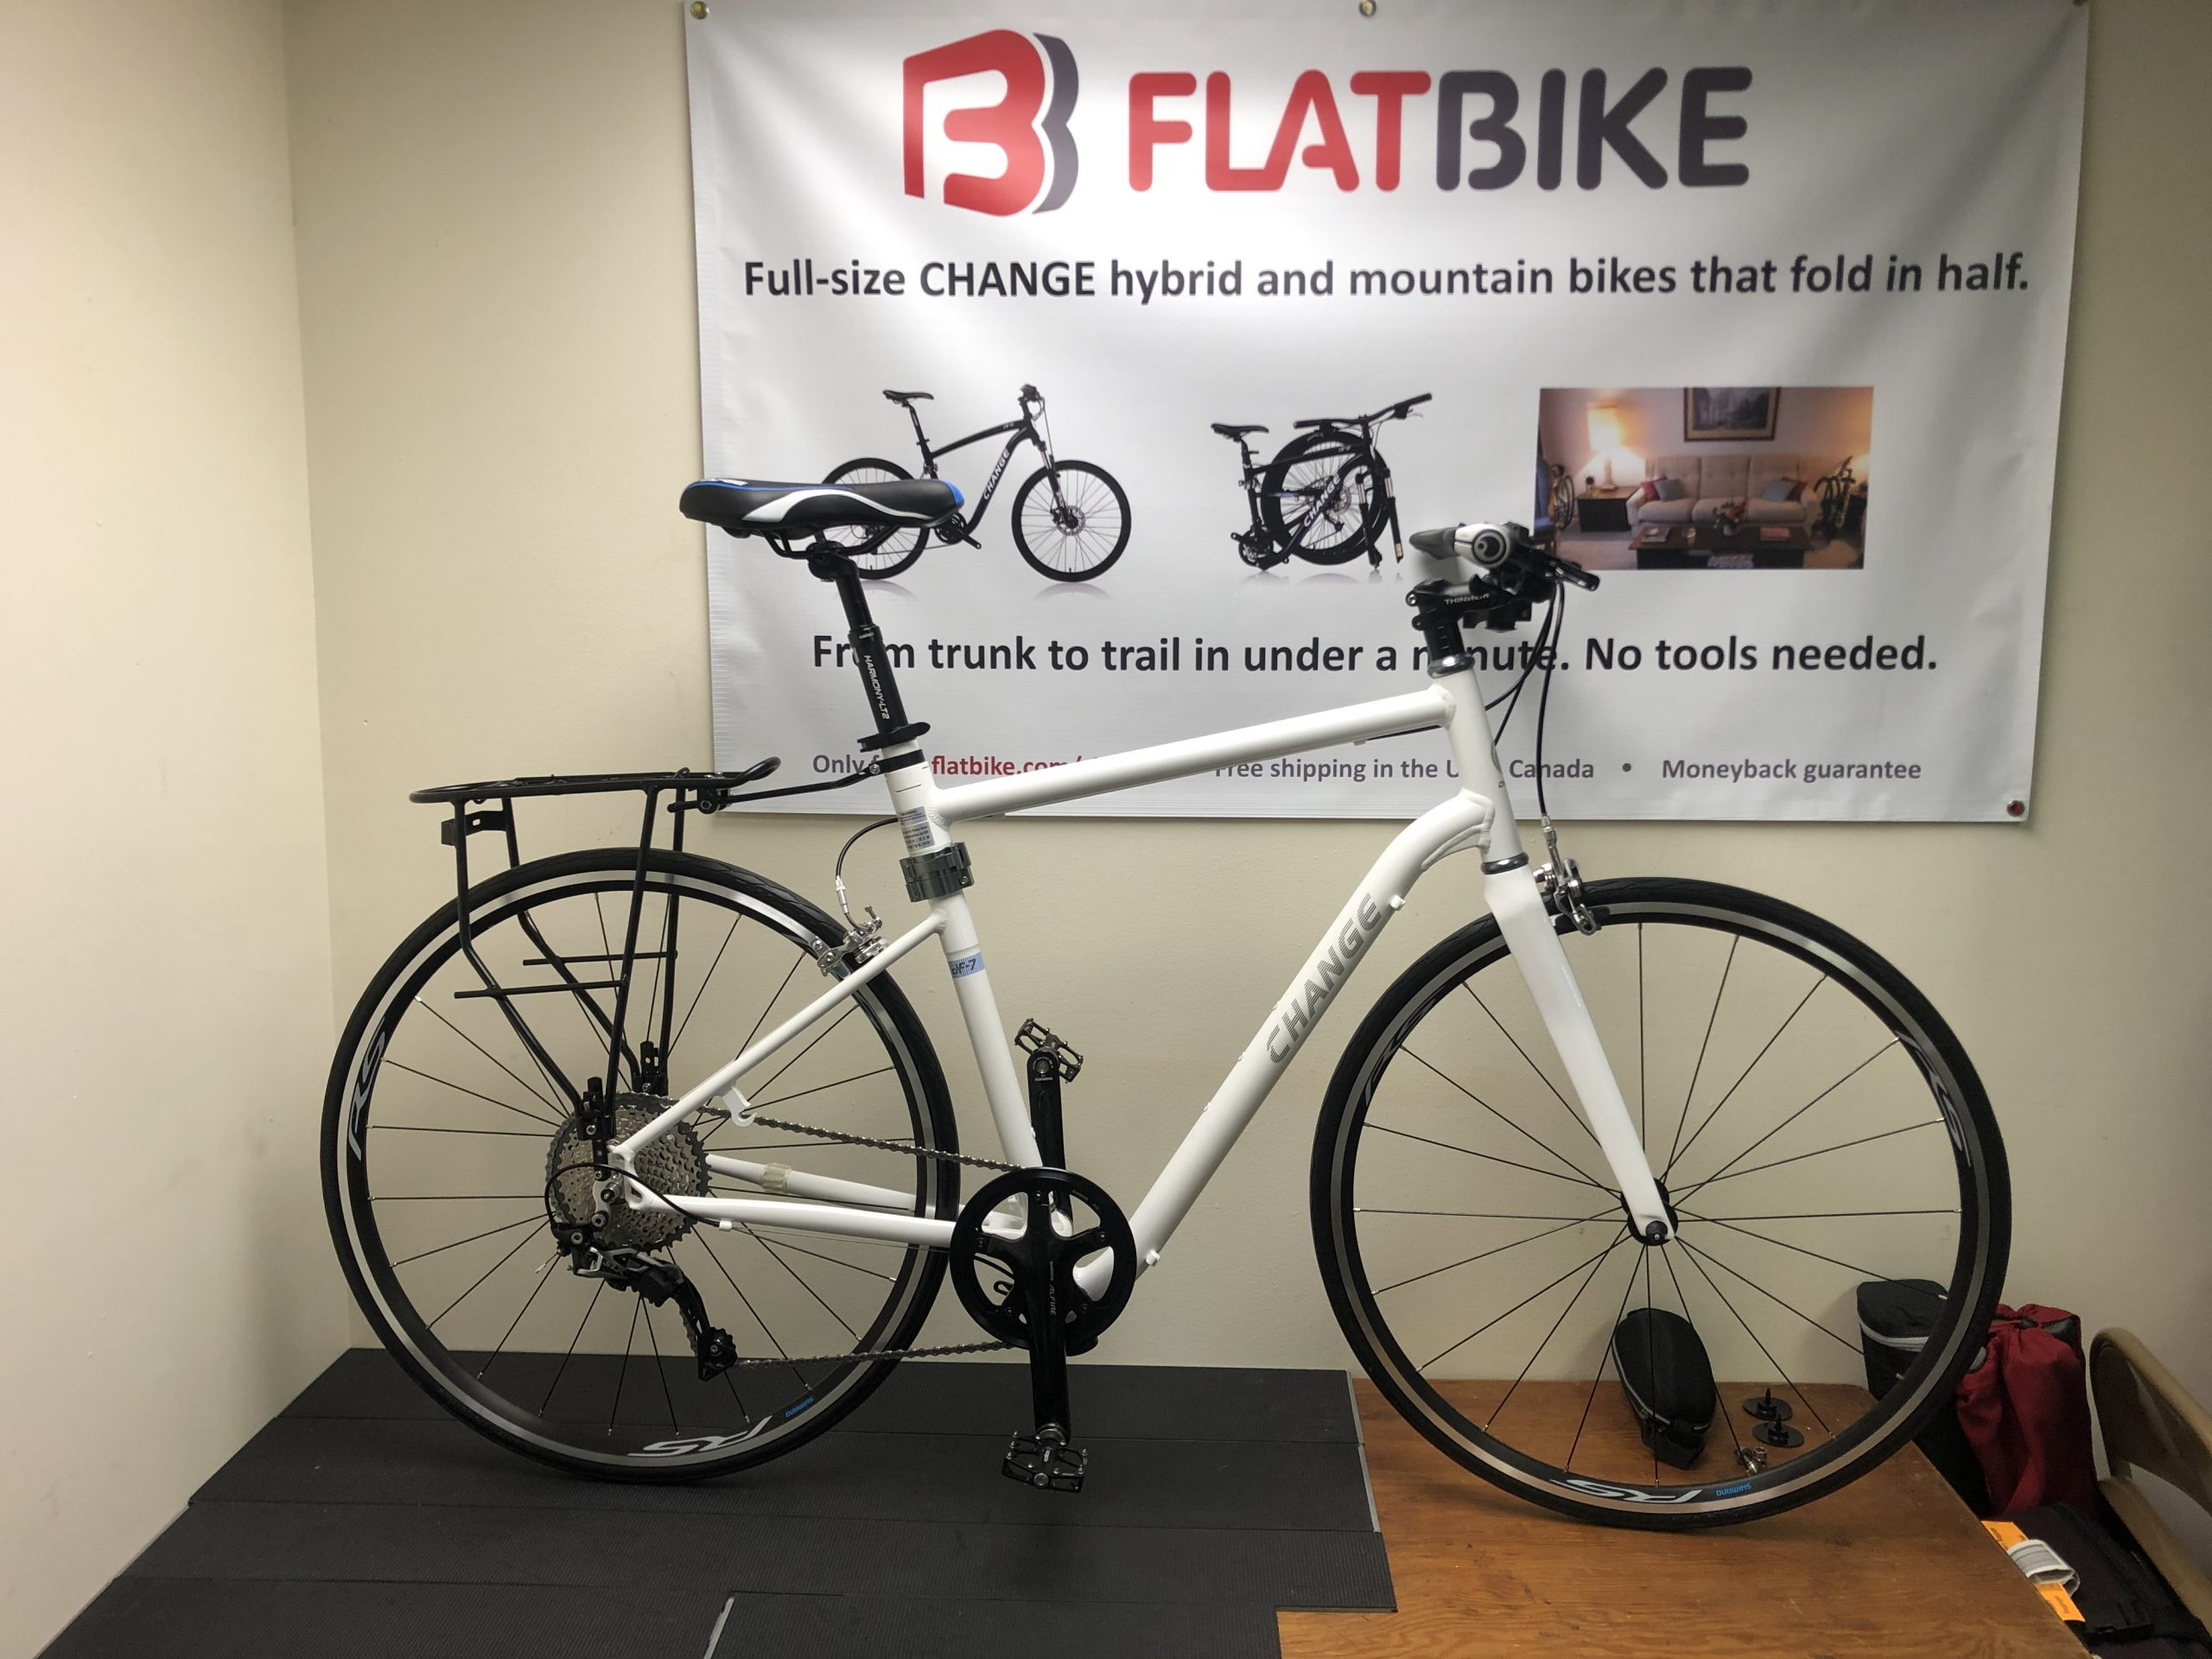 Flatbike Road Scholar ultimate campus bike profile